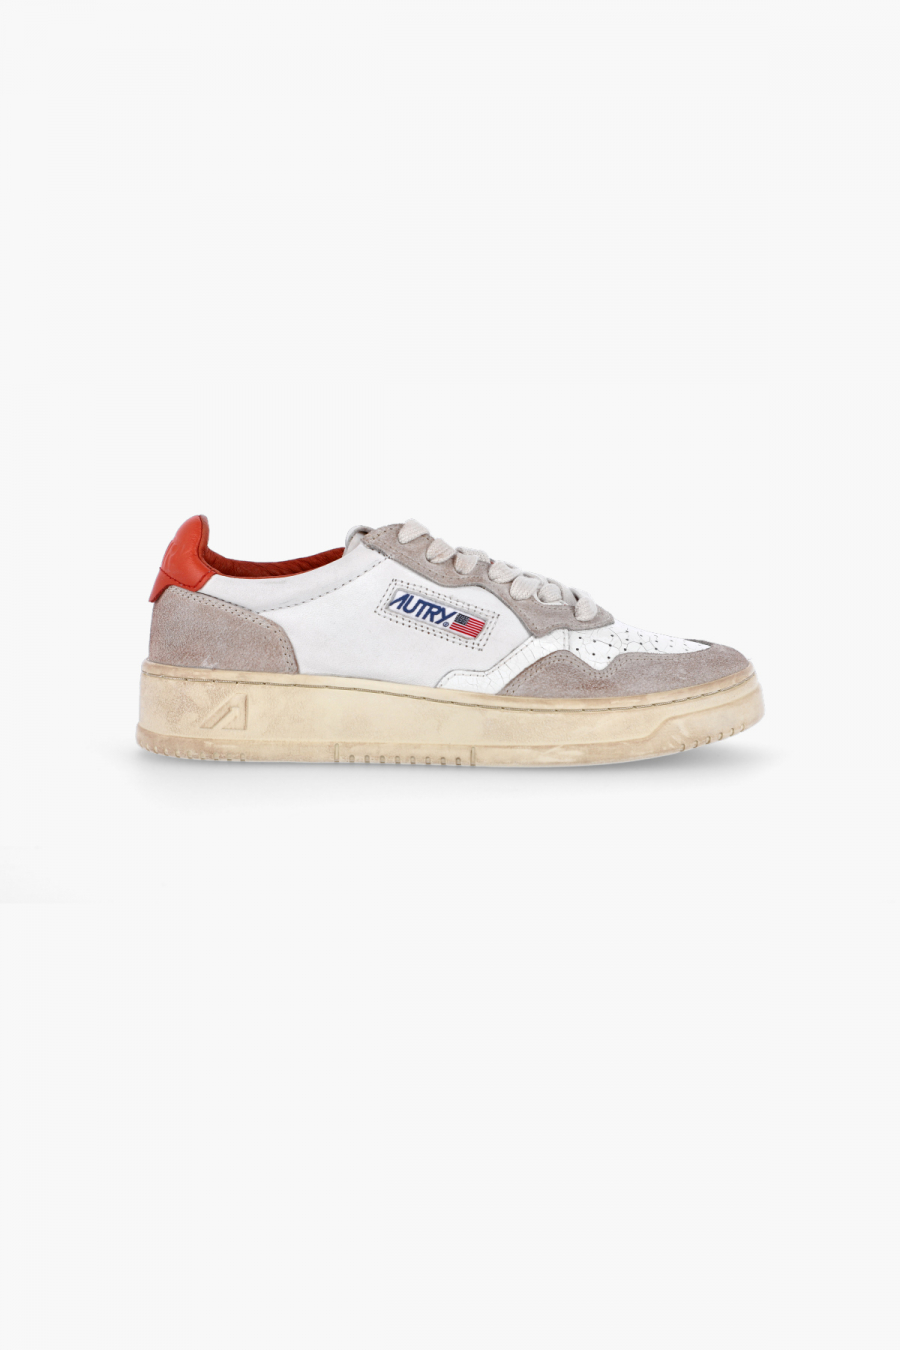 LOW SNEAKERS AUTRY MUJER